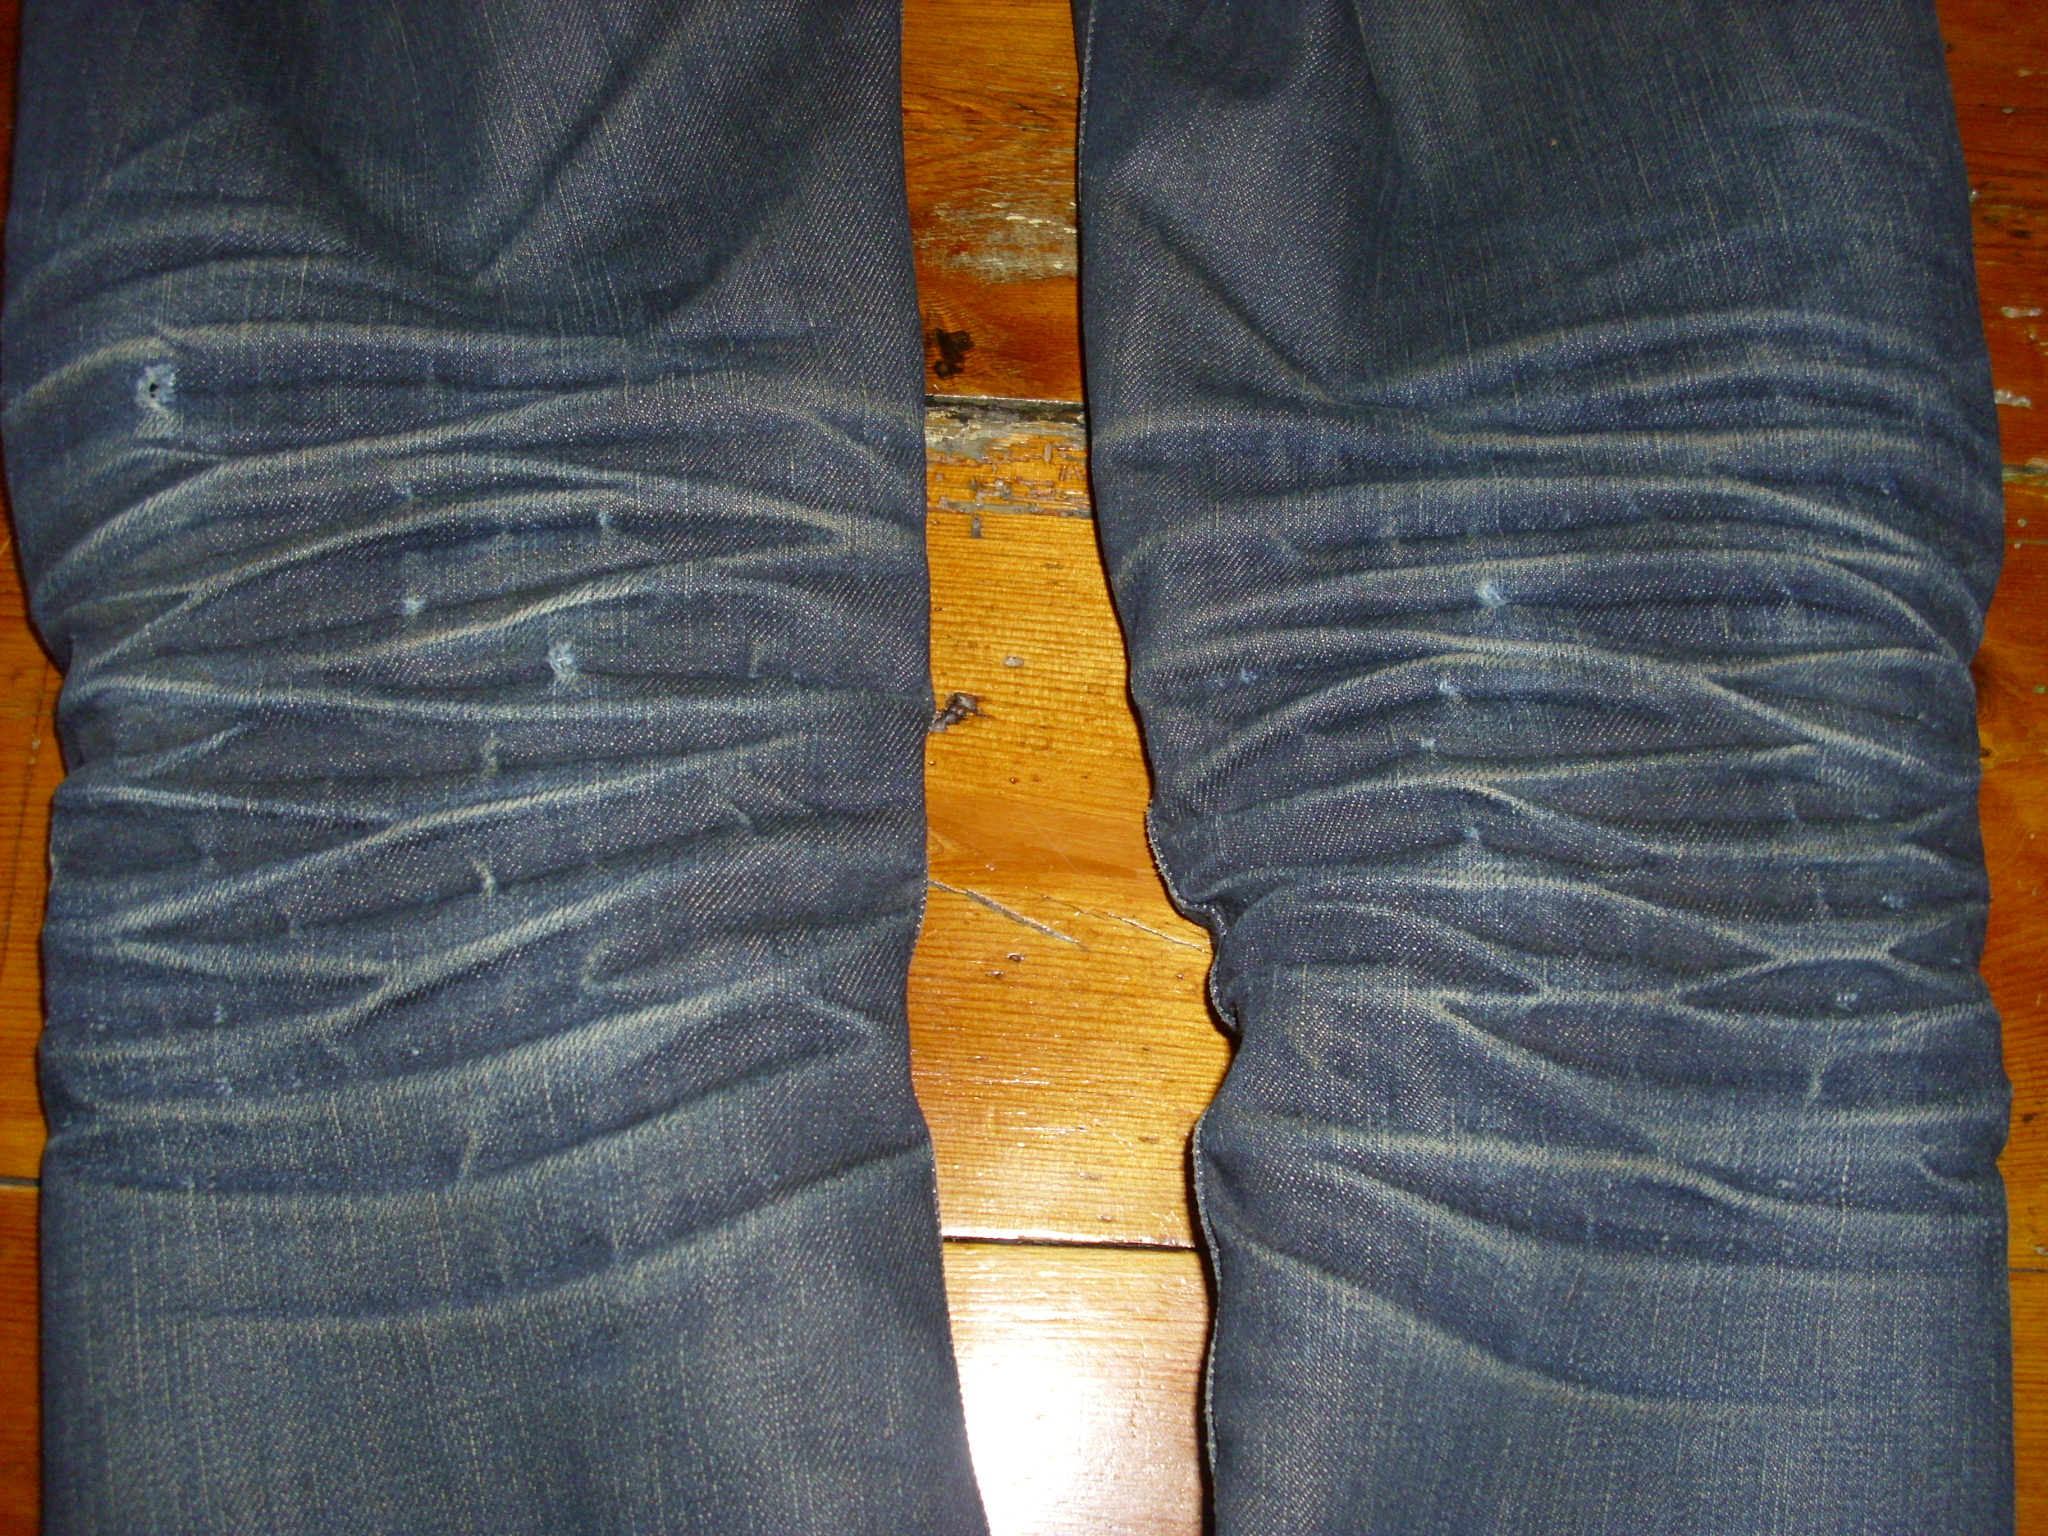 GTDO - 8 months' wear.  Do these holes have a special name?